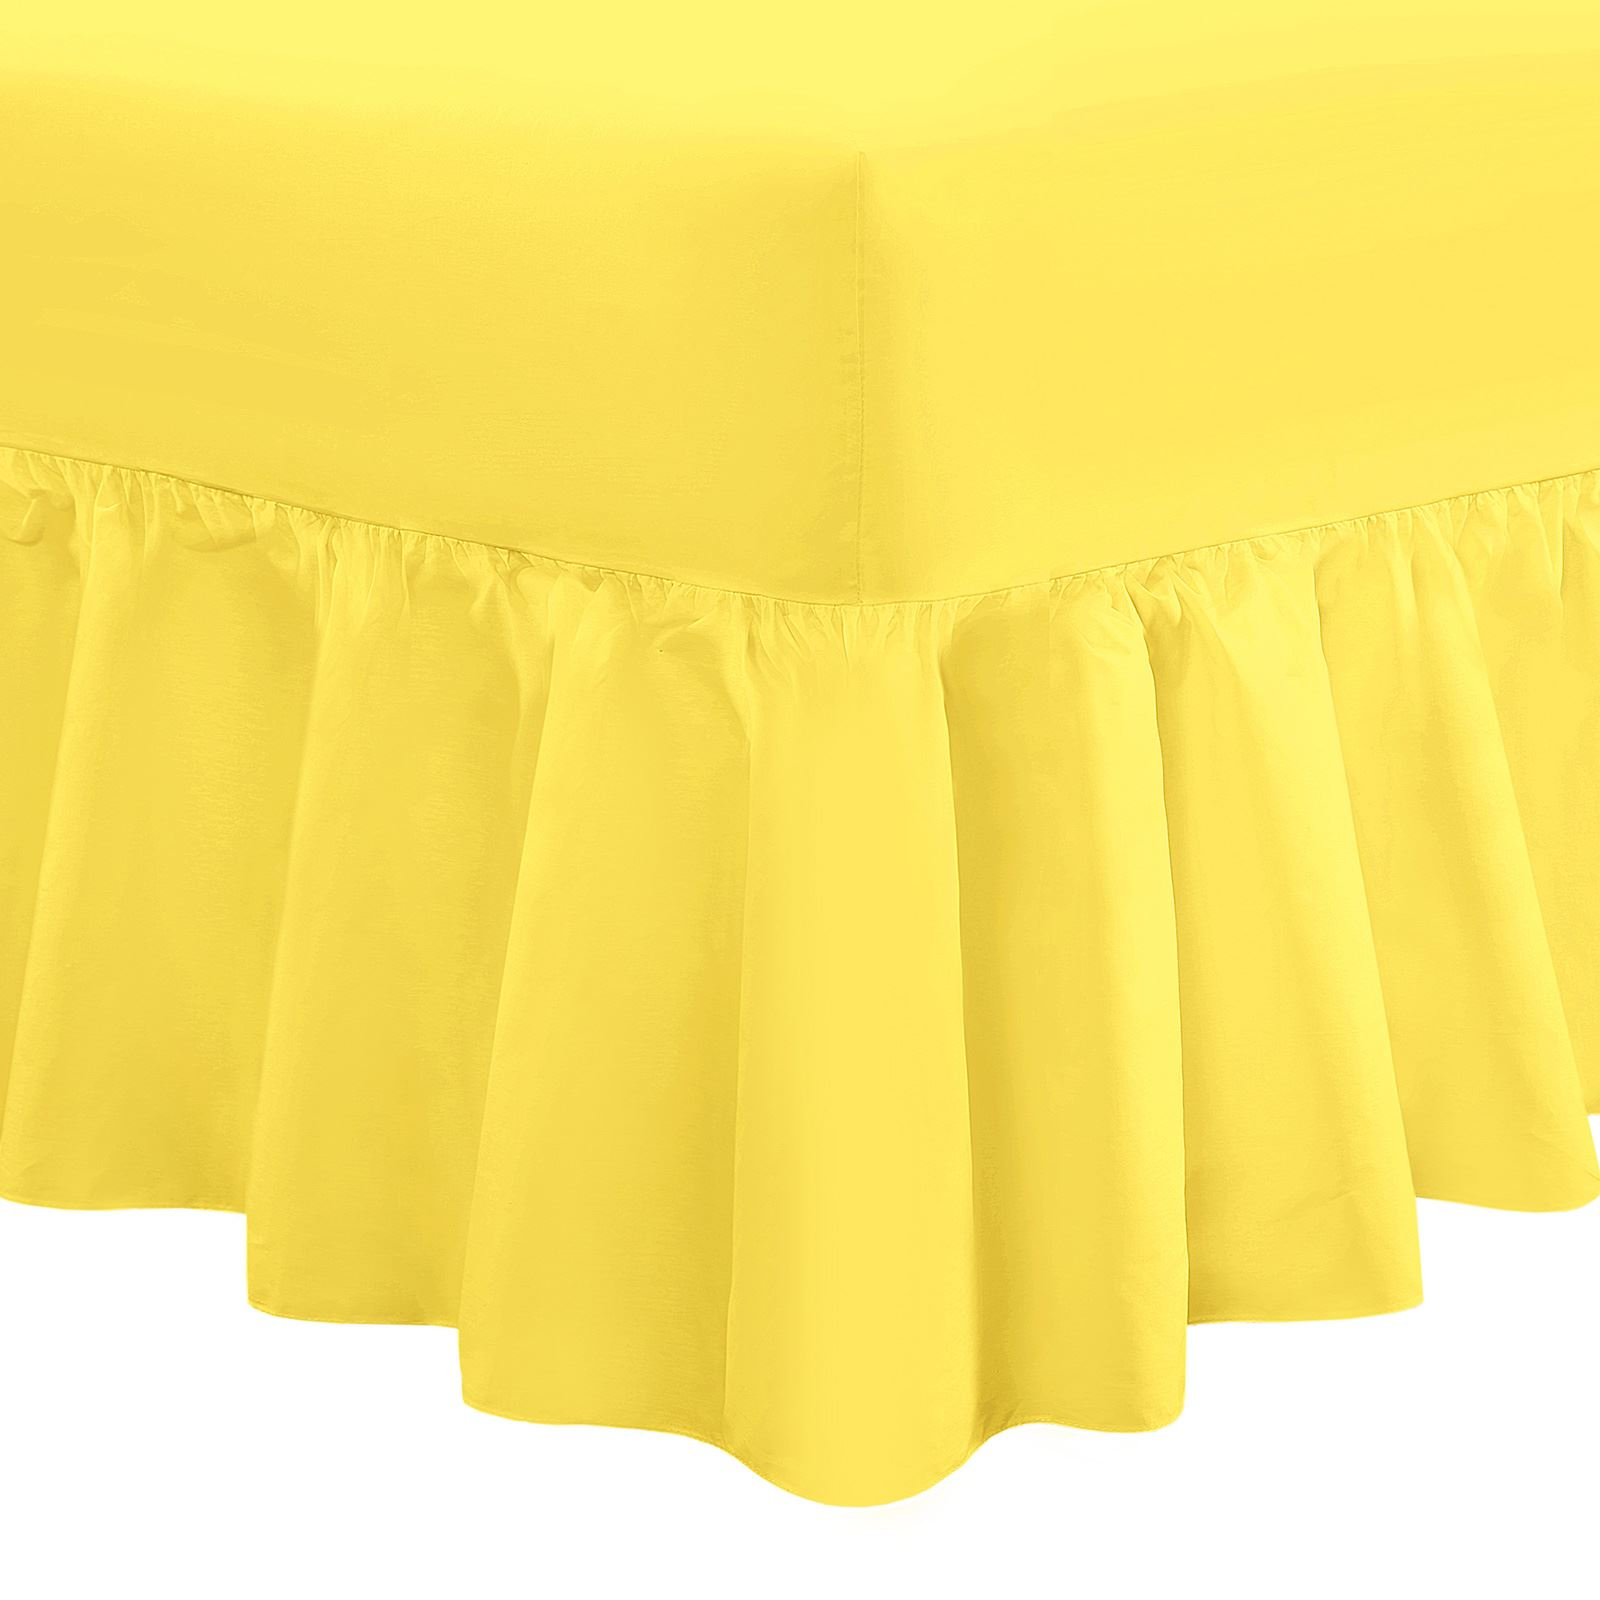 Plain-Frilled-Fitted-Valance-Sheet-Cotton-Blend-Sheets-Single-Double-Super-King miniatuur 5